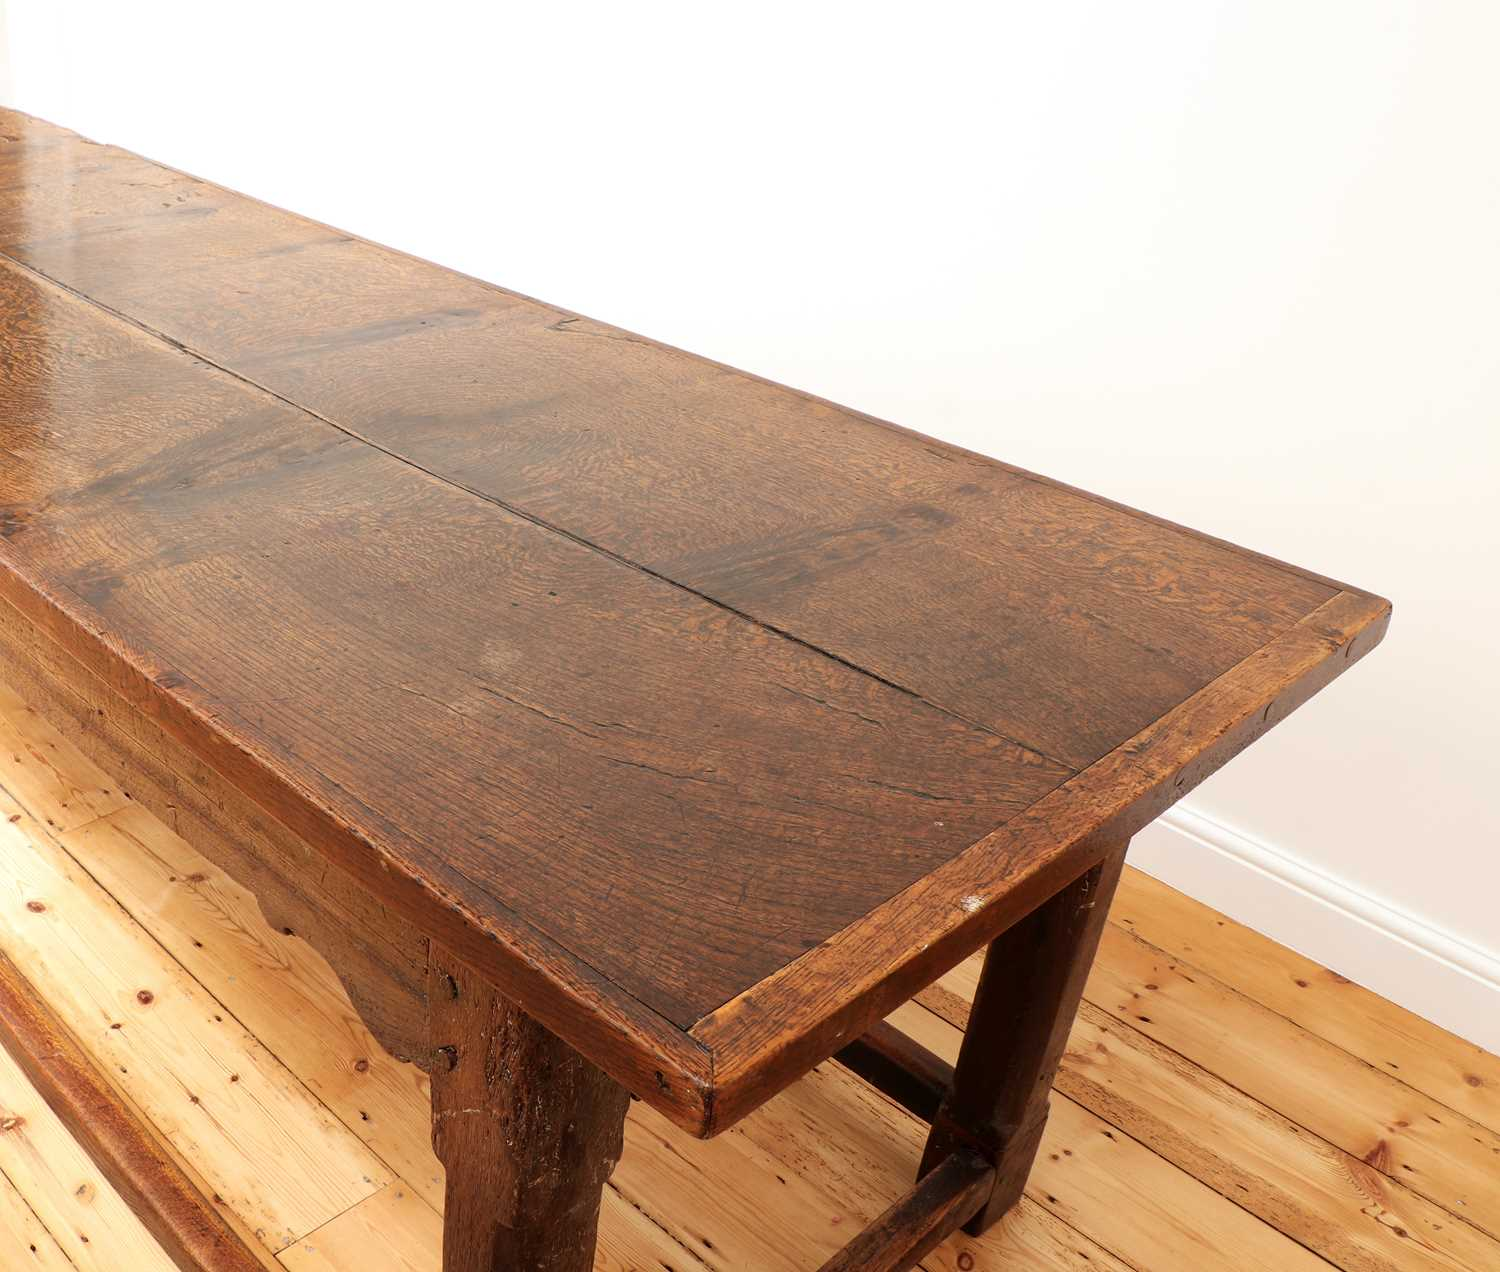 An oak refectory table, - Image 3 of 8